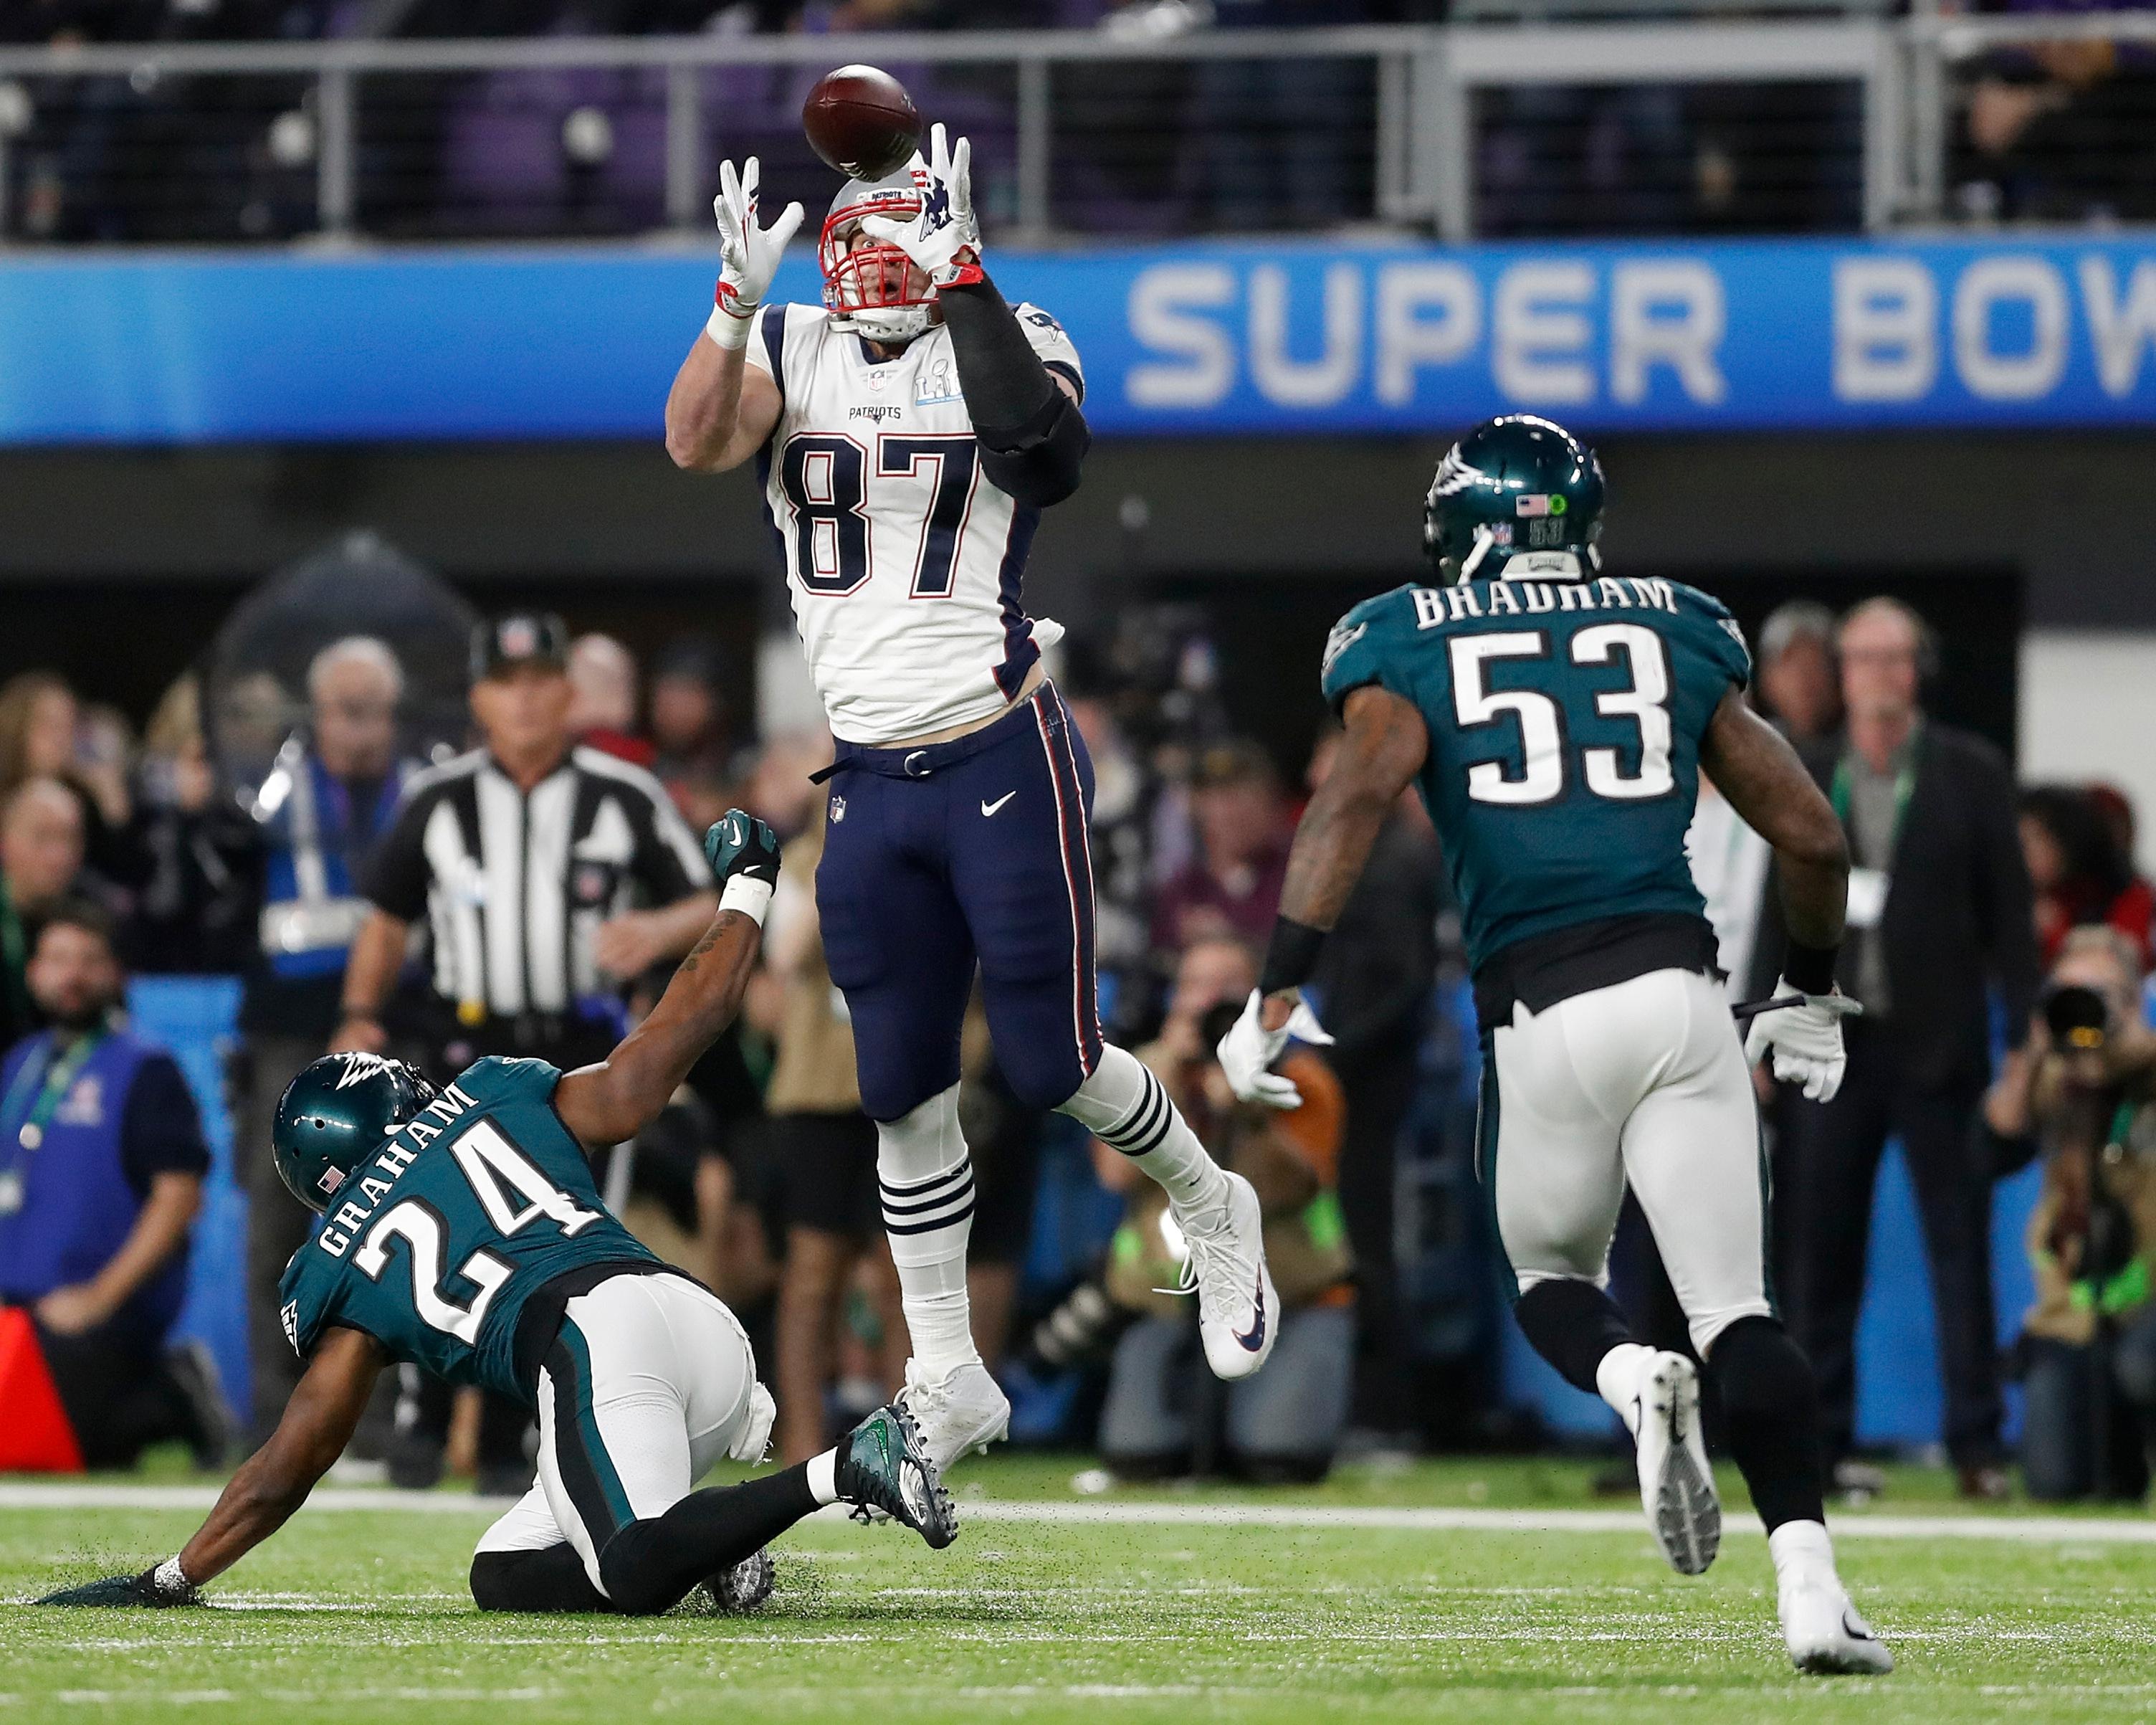 New England Patriots' Rob Gronkowski catches a pass during the second half of the NFL Super Bowl 52 football game against the Philadelphia Eagles Sunday, Feb. 4, 2018, in Minneapolis. (AP Photo/Jeff Roberson)